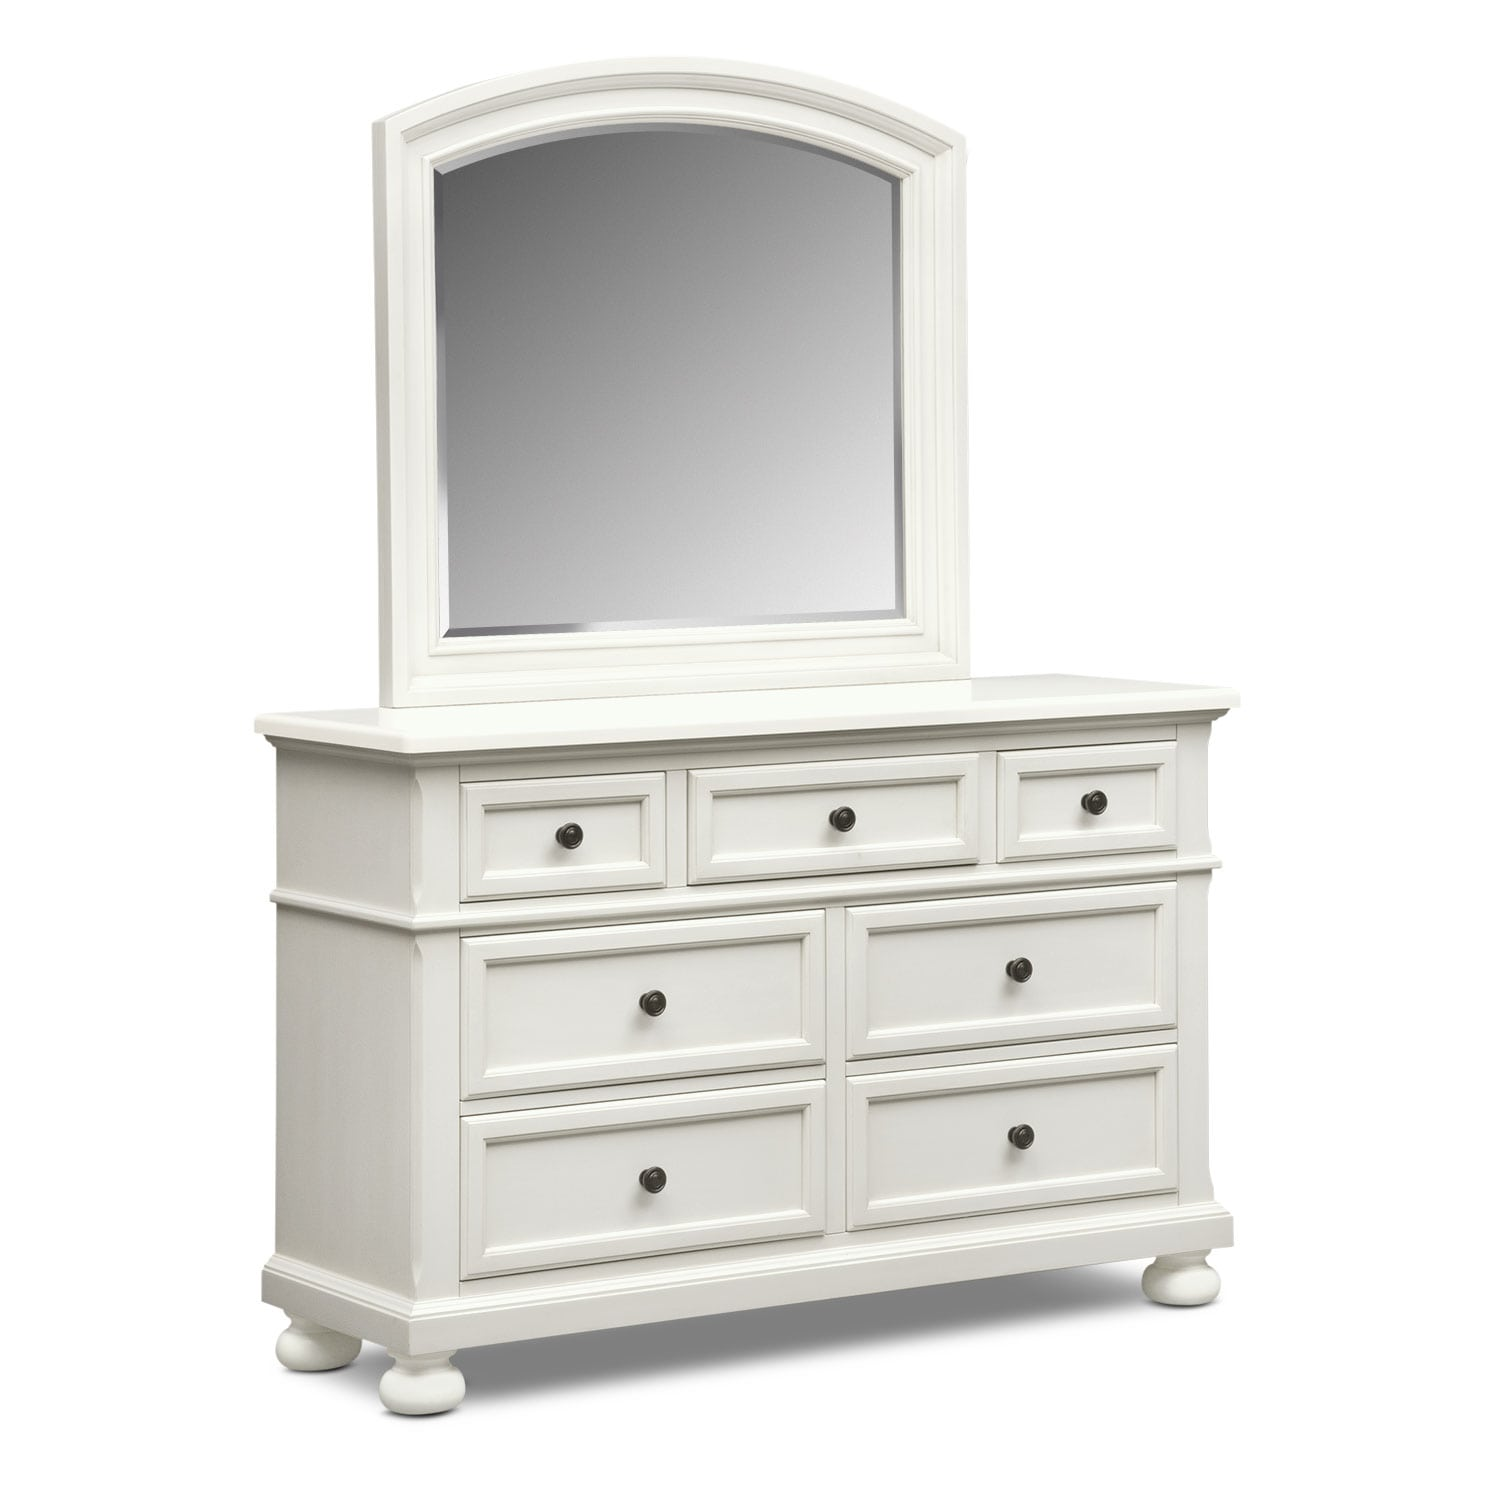 Bedroom Furniture - Hanover Youth Dresser and Mirror